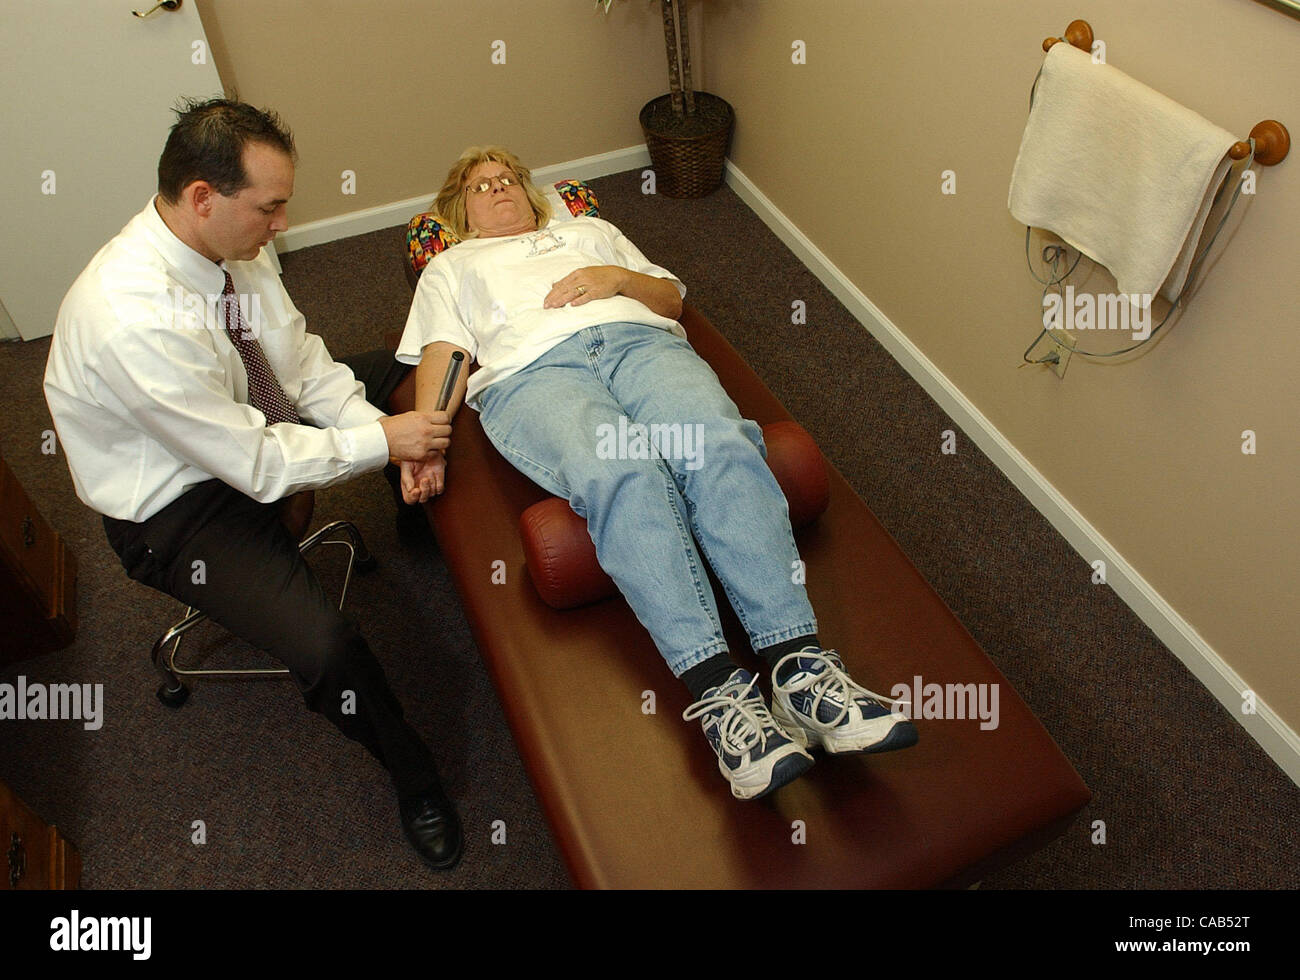 Darrin Stock Photos & Darrin Stock Images - Page 10 - Alamy